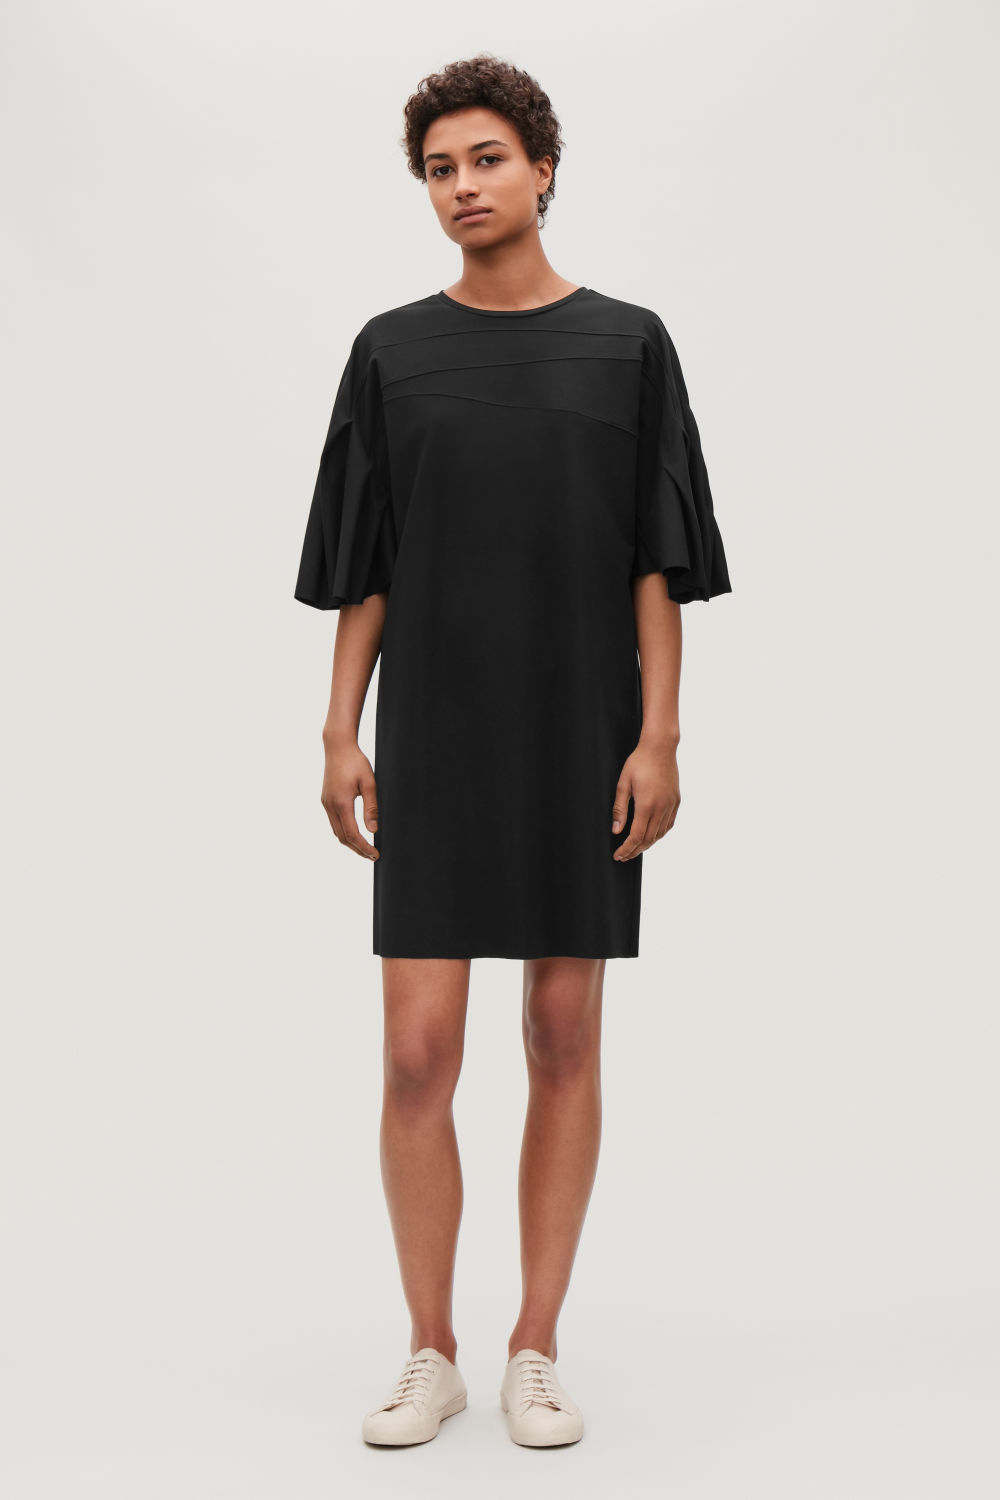 COS PLEATED DRESS,Black